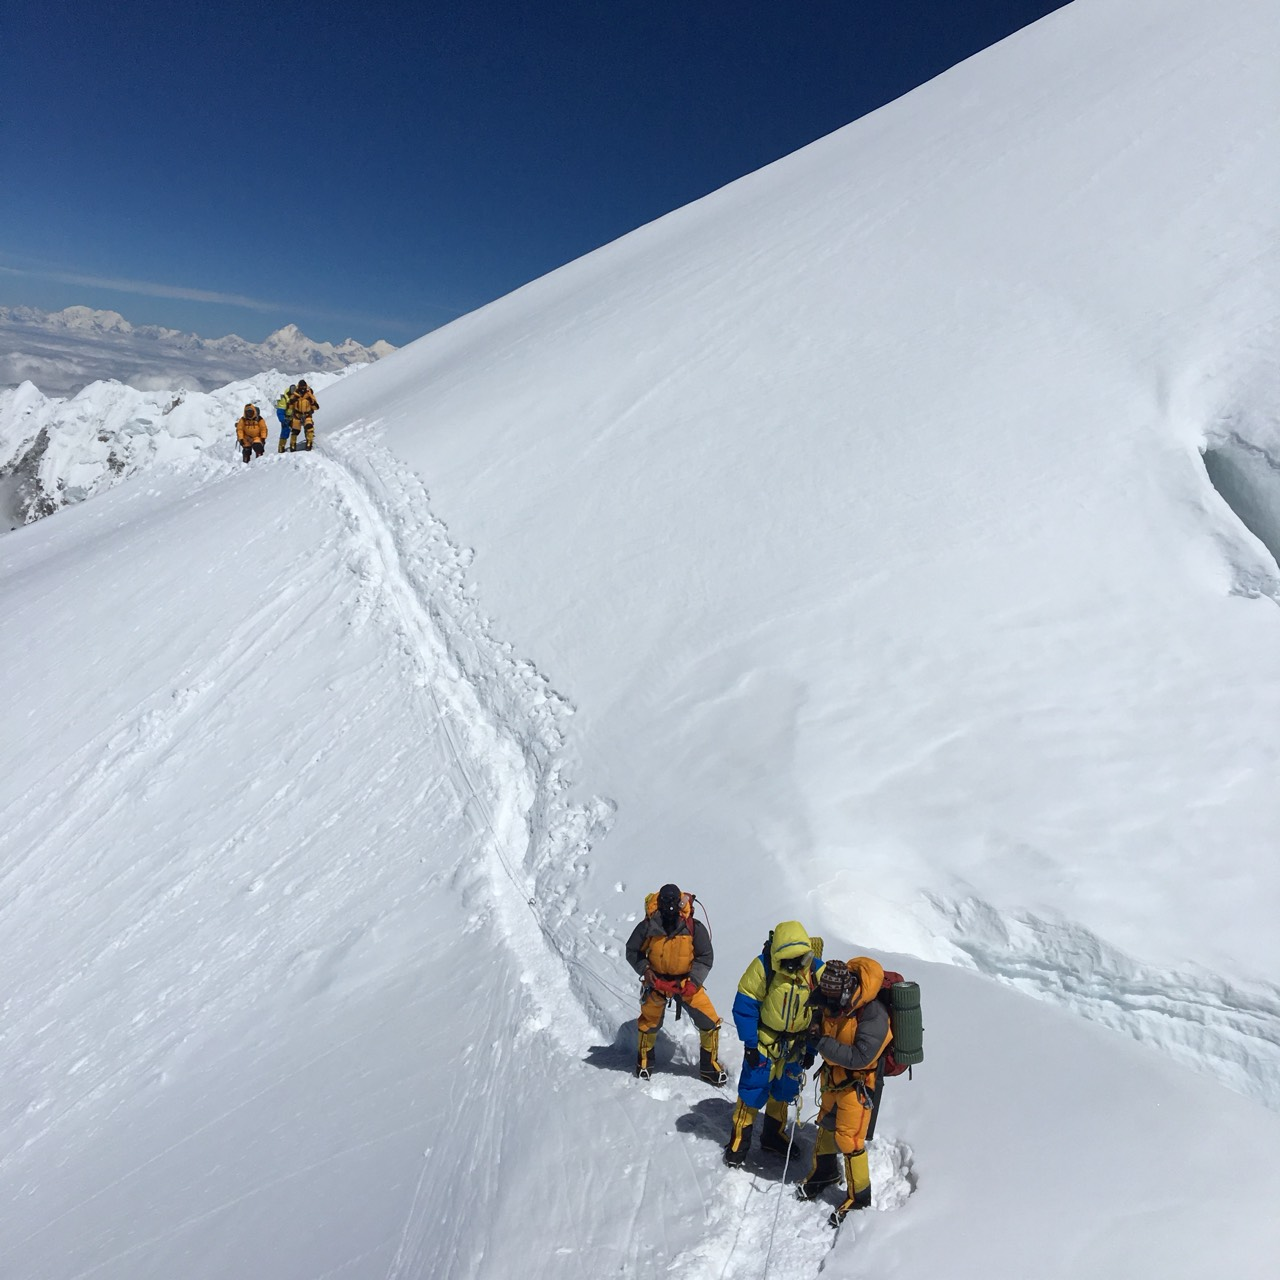 Climbing on Mt. Kanchenjunga Expedition